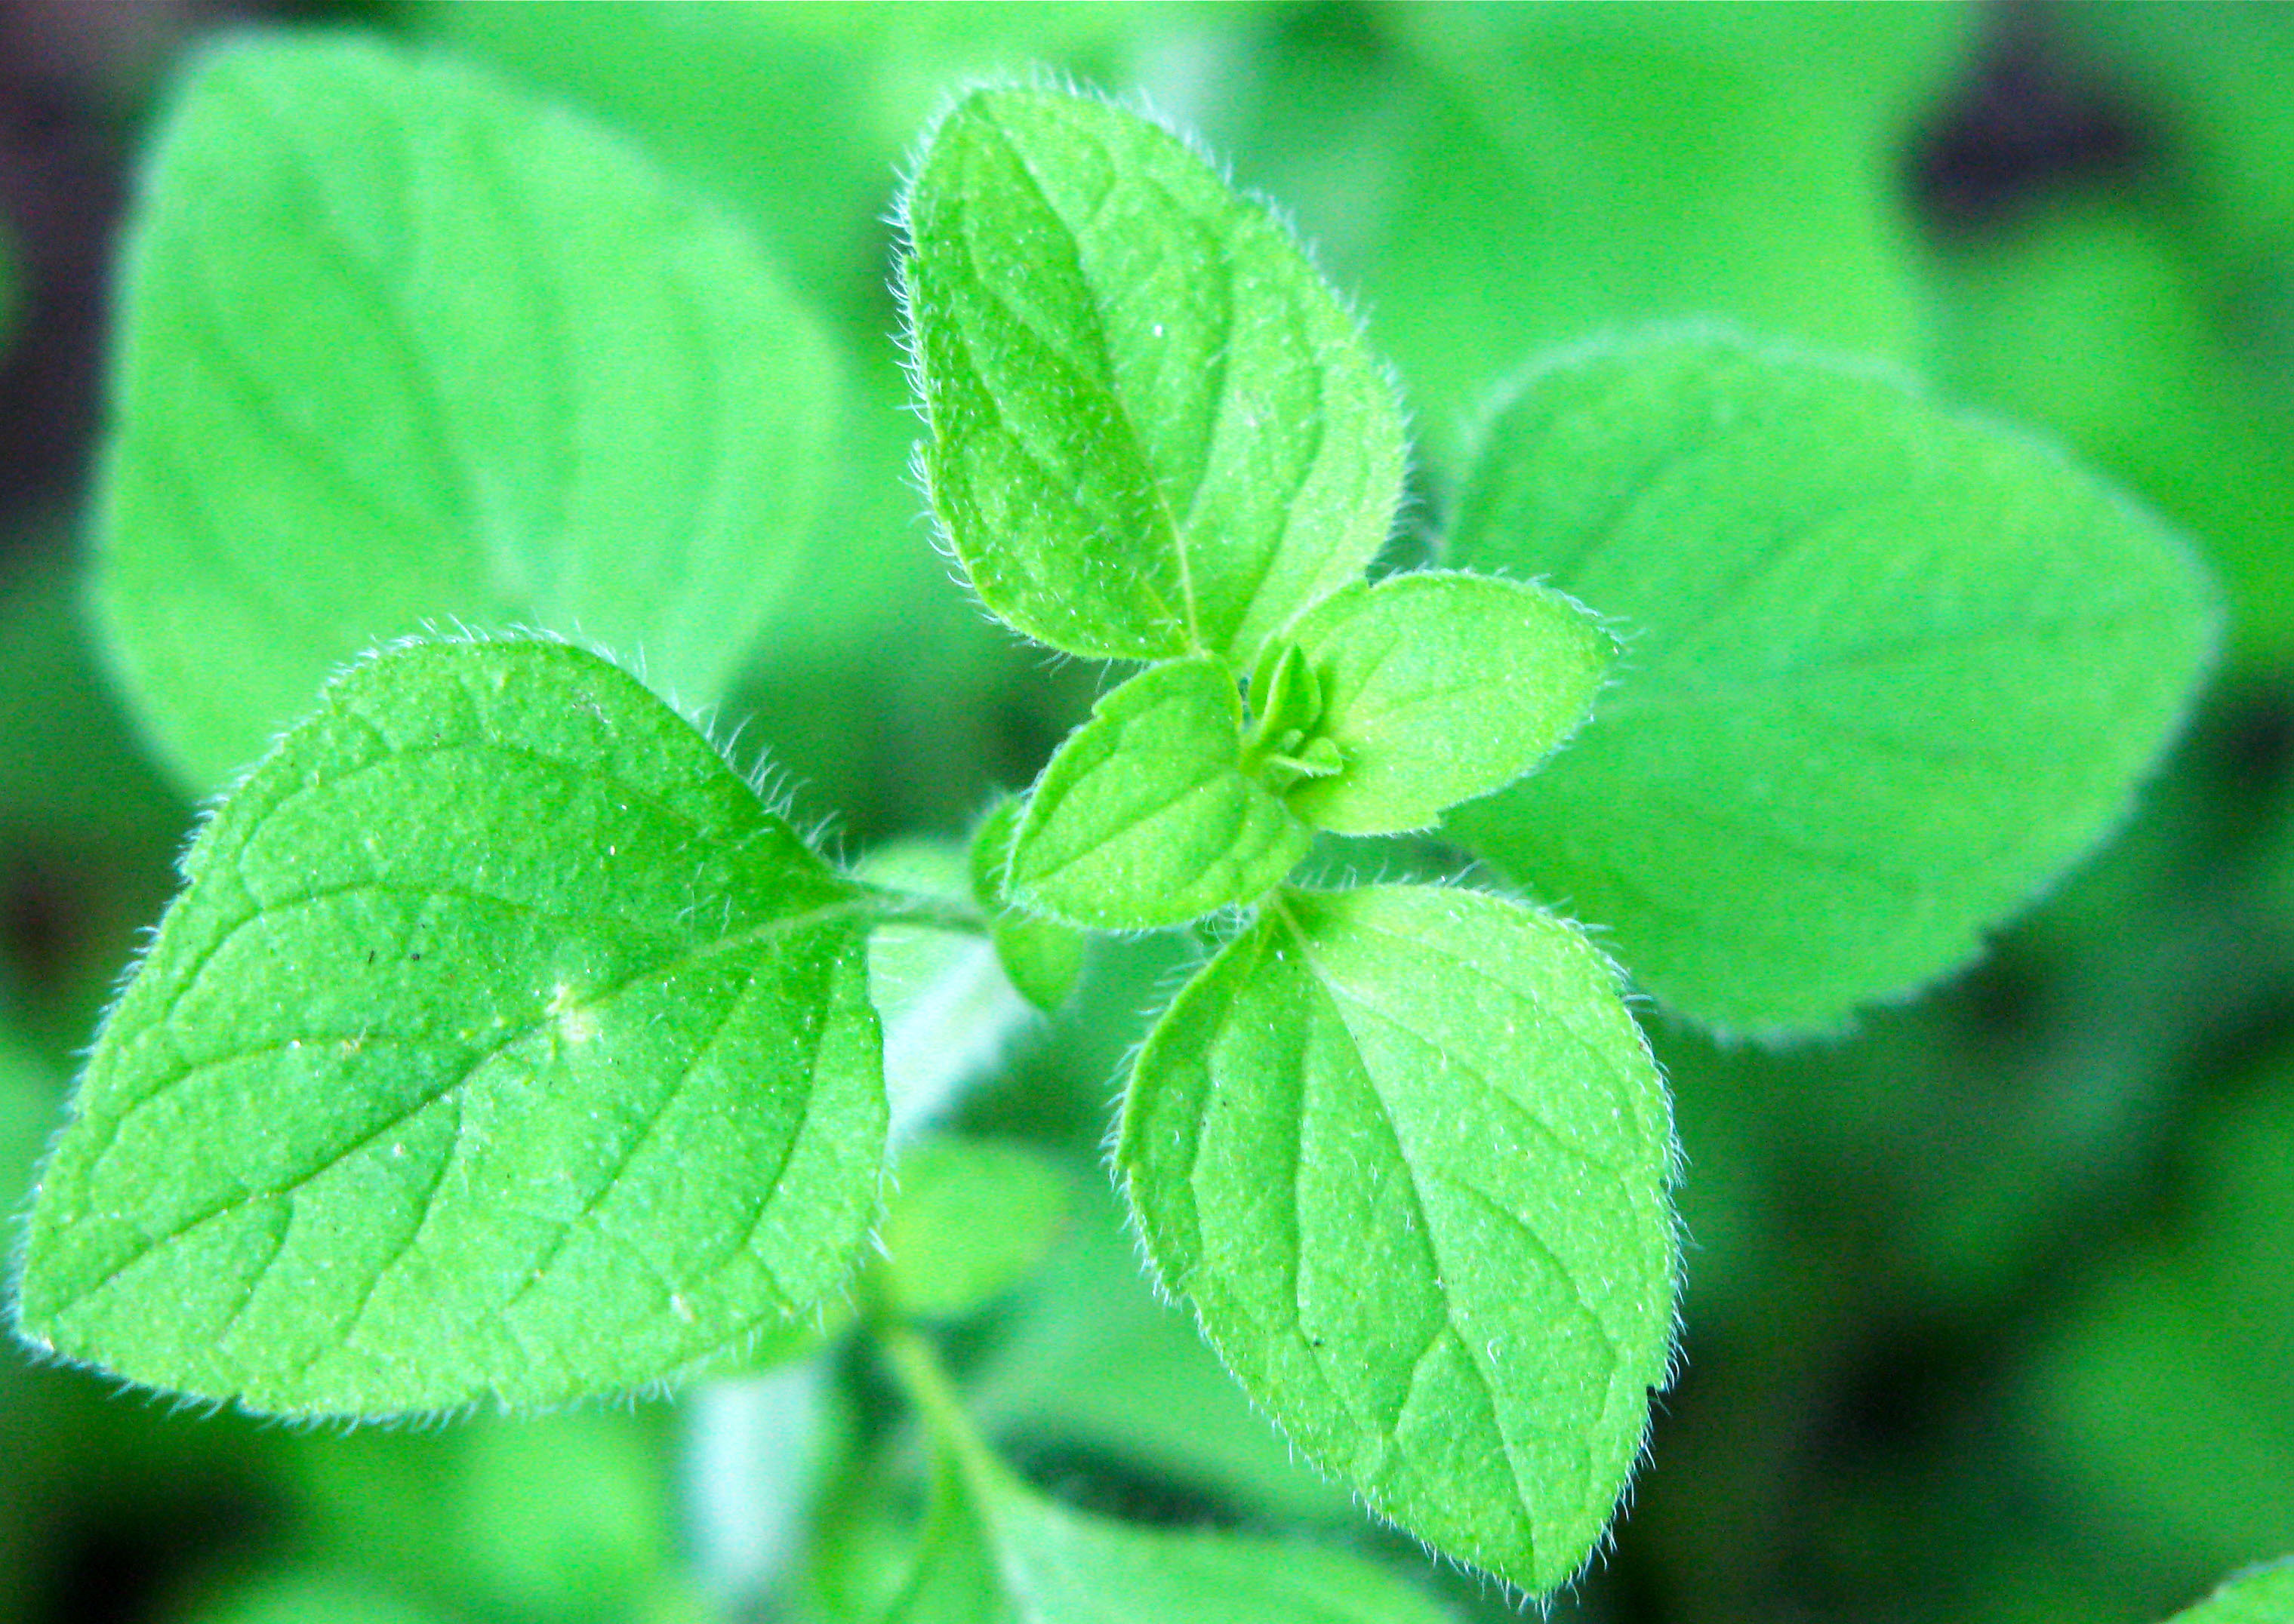 The Best Italian Herb You Never Heard Of